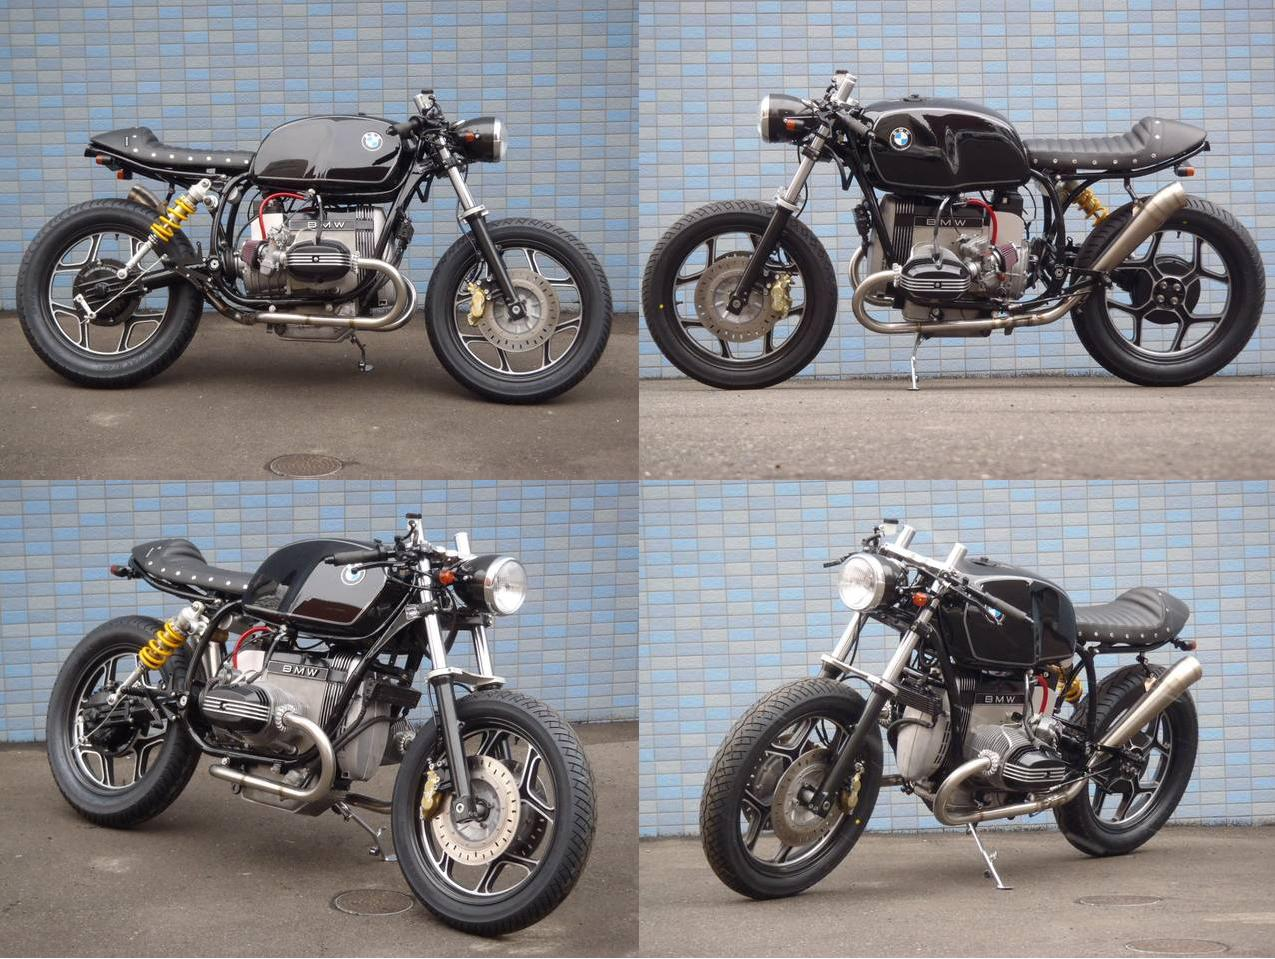 cafe racers and metric motorcycles freaks in the world.: 2013